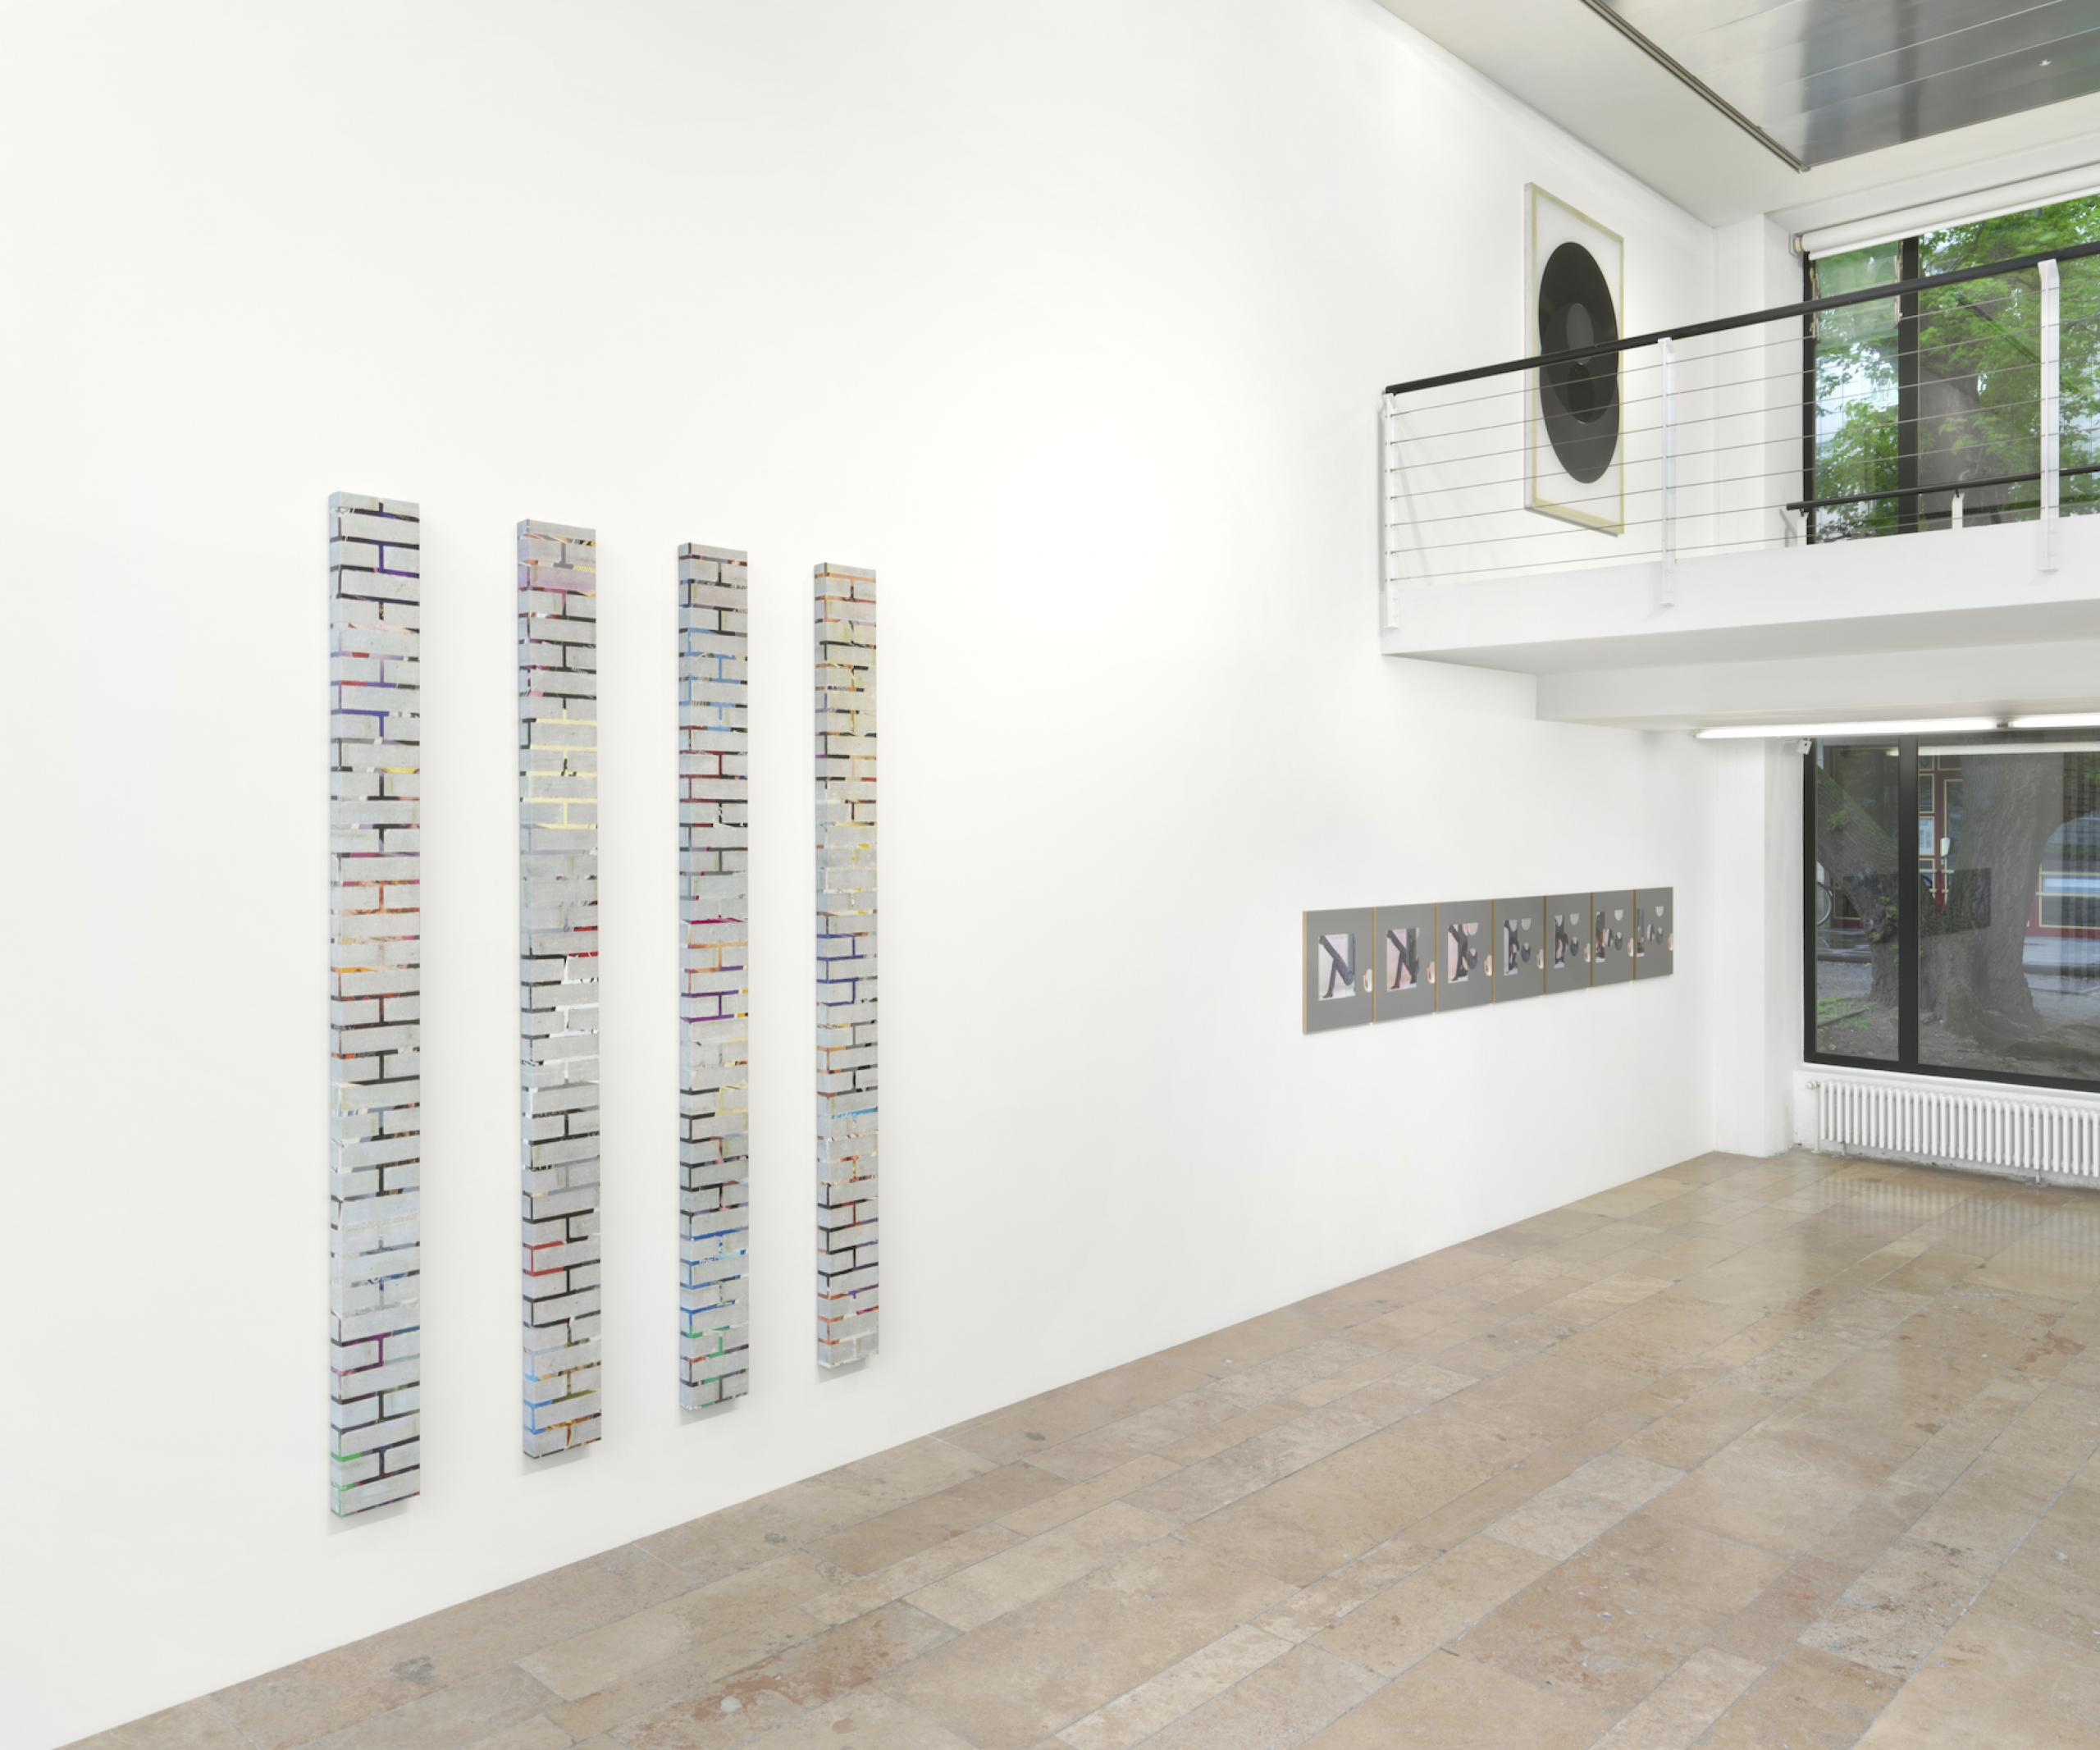 Installation view at Capitain Petzel © the artist, Photo: Jens Ziehe